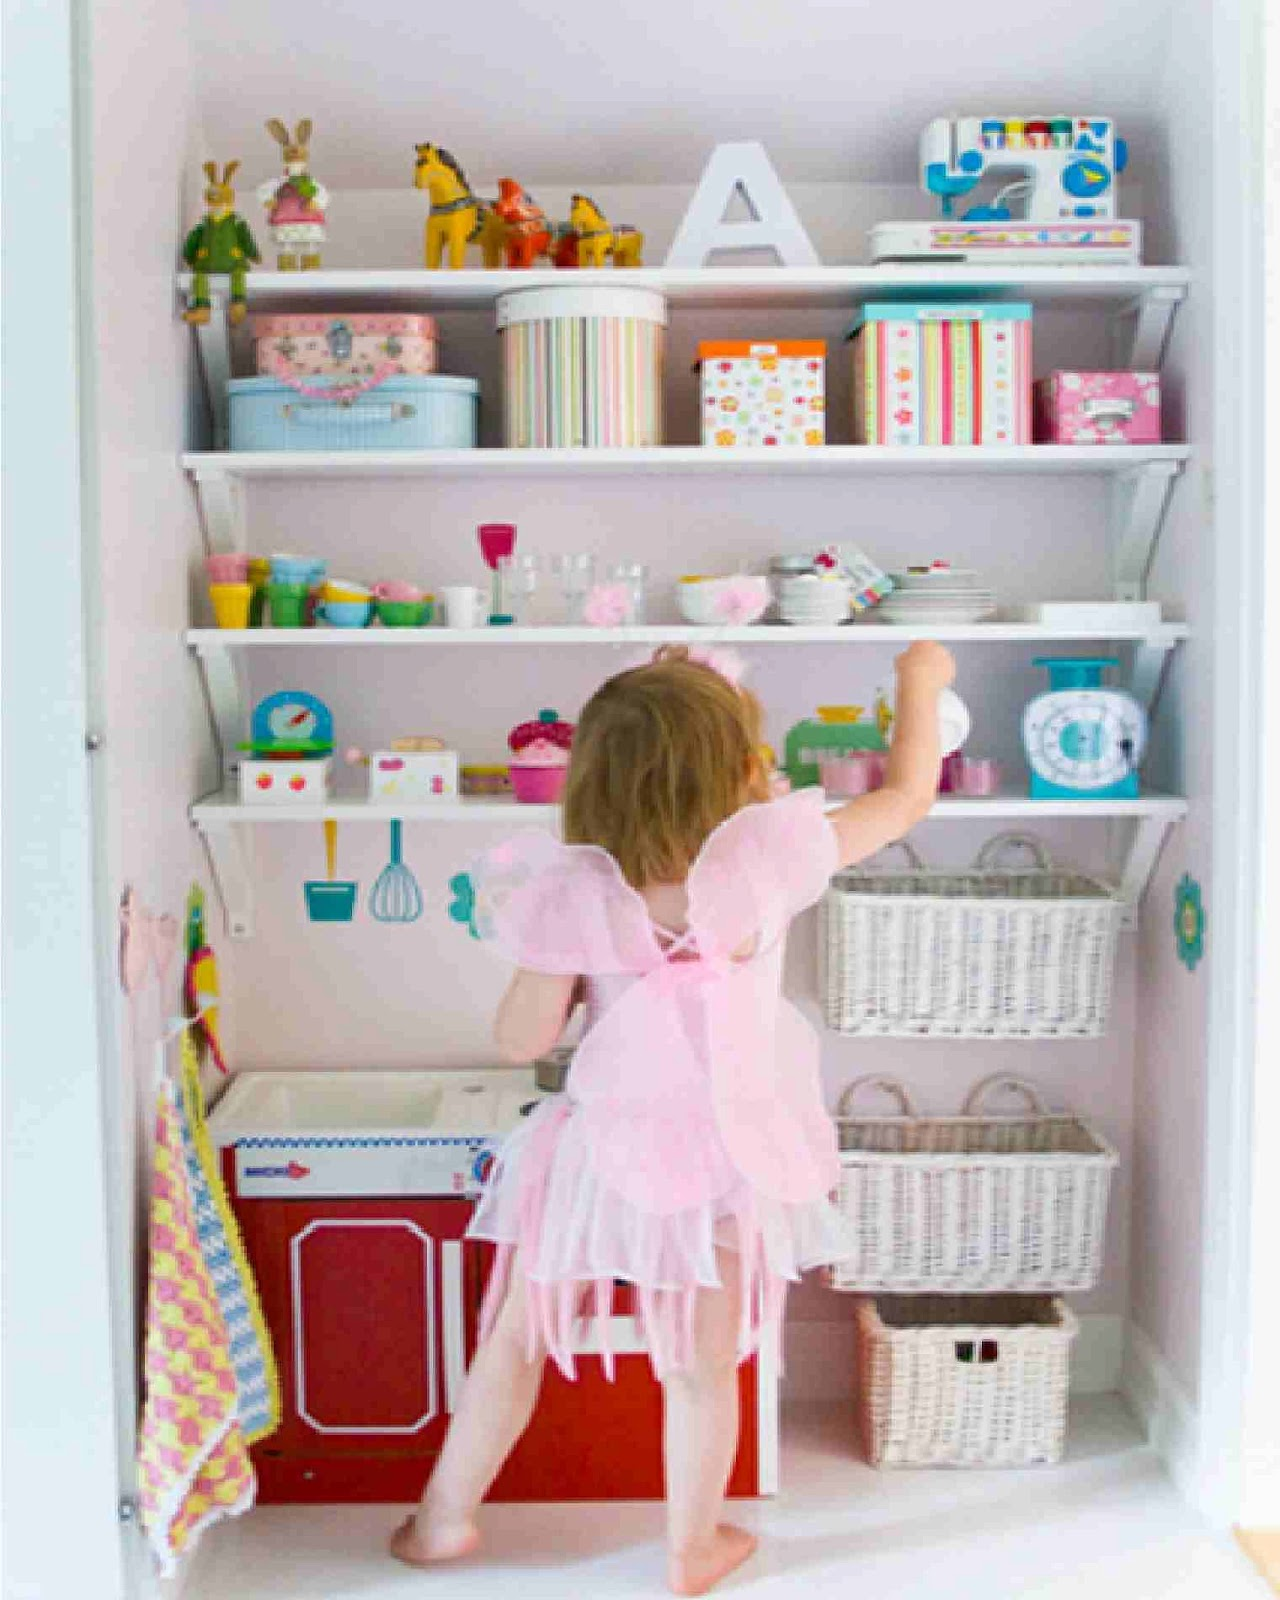 Bookshelf Storage Chest Kids Toy Box Plastic Play Room: Organizing Kids Rooms- 4 Top Tips To Organization Your